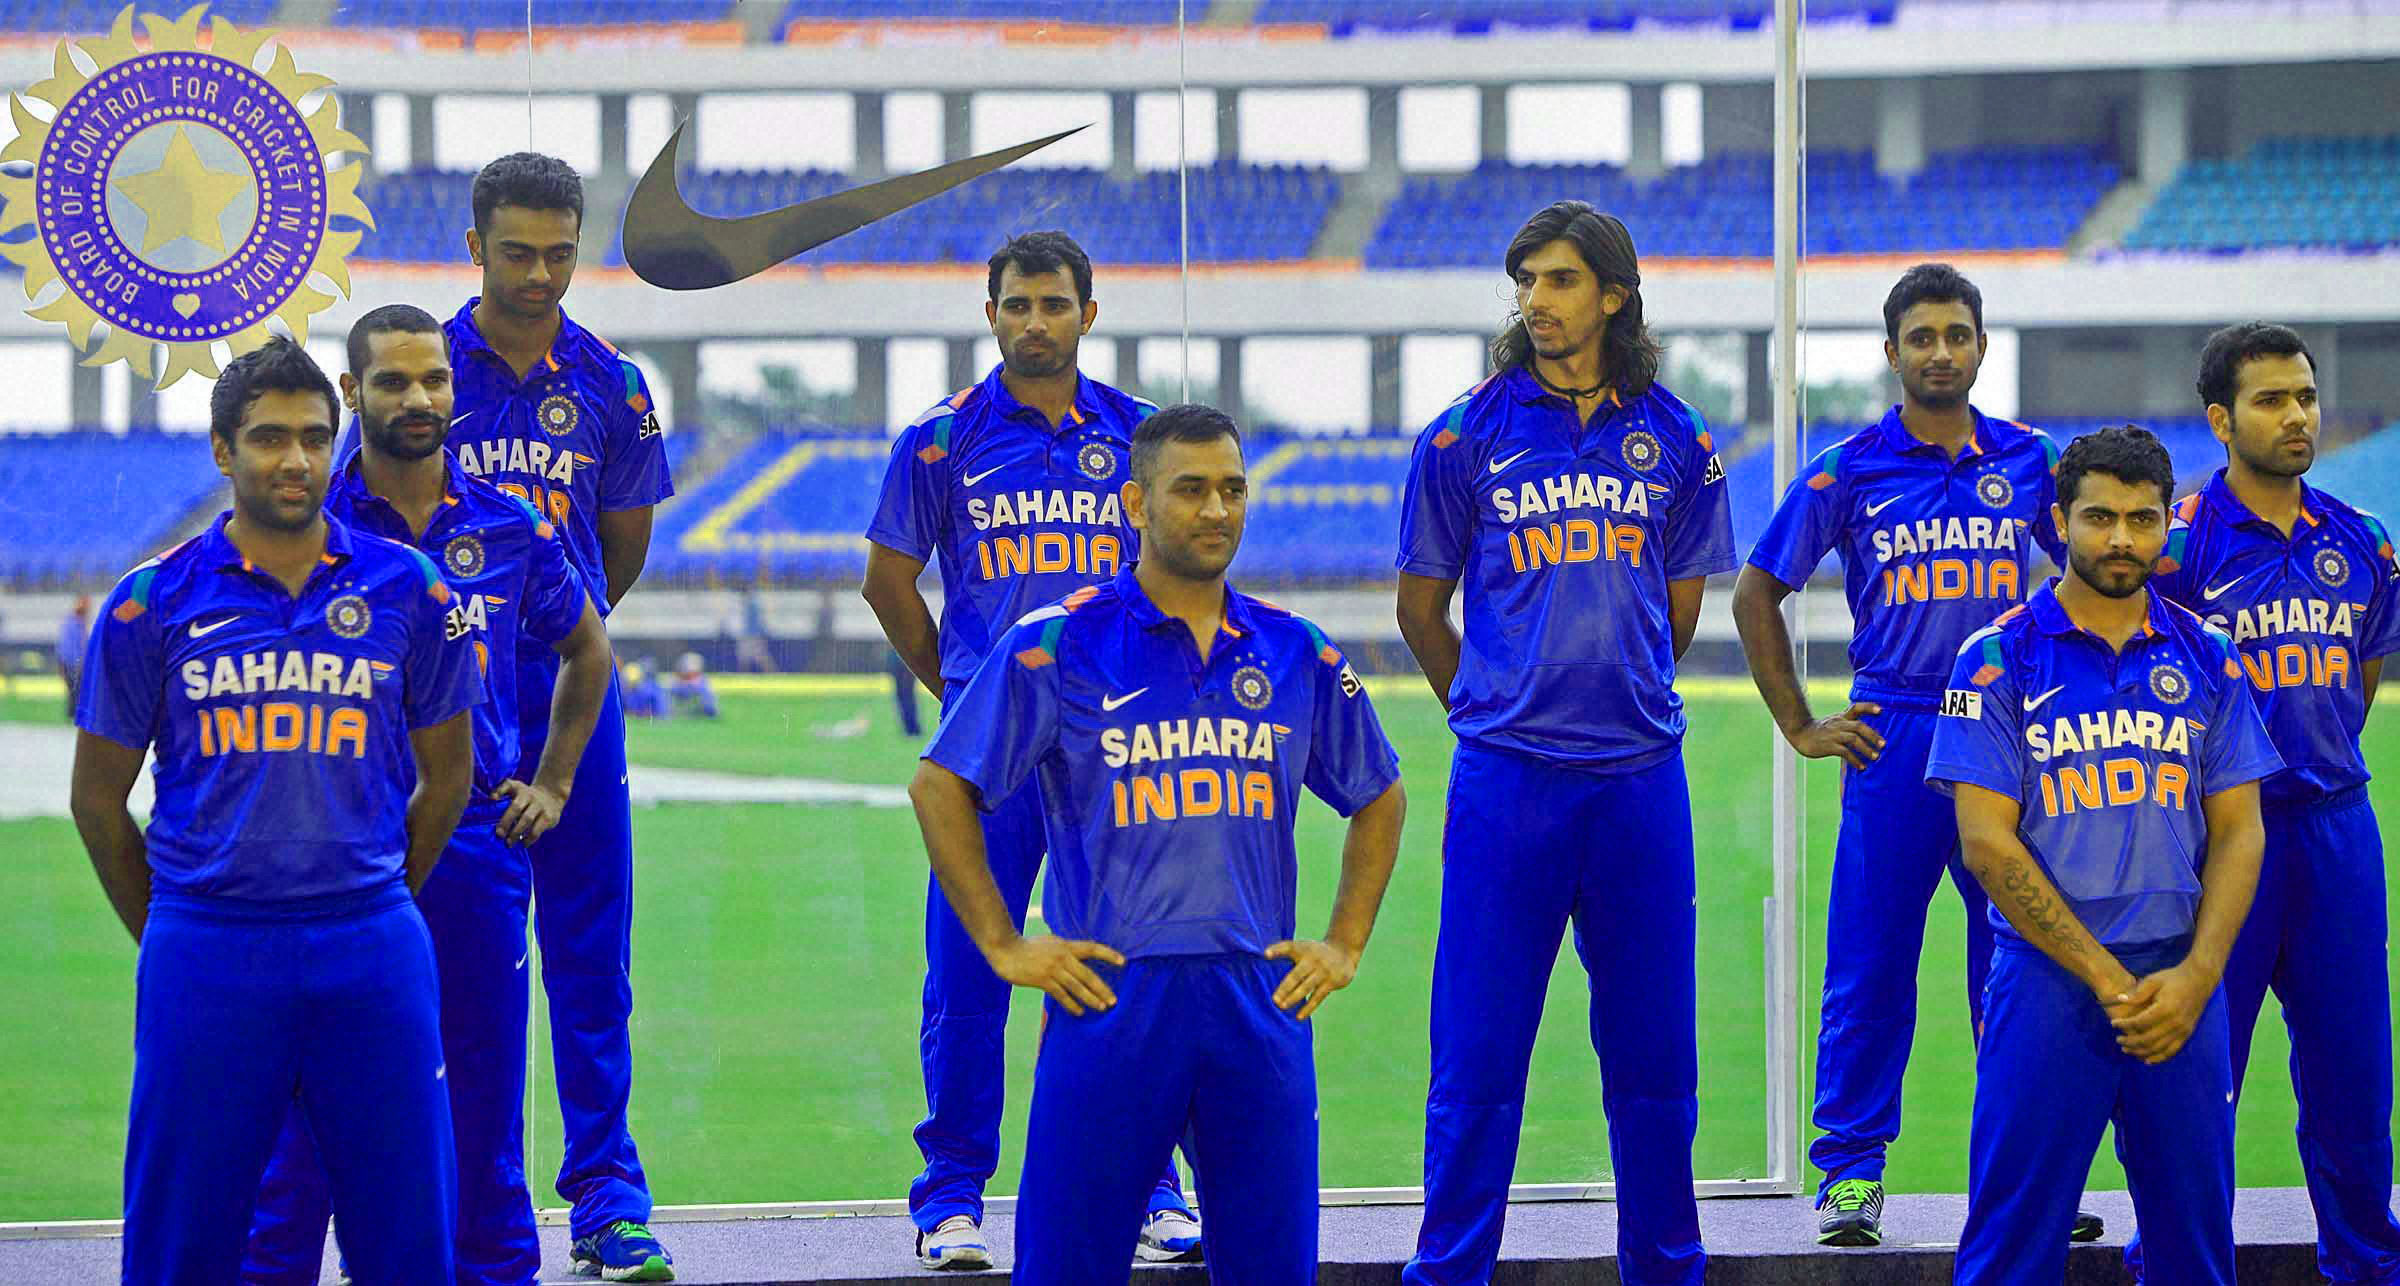 INDIAN CRICKET TEAM PLAYER IMAGES PHOTO PICS FREE